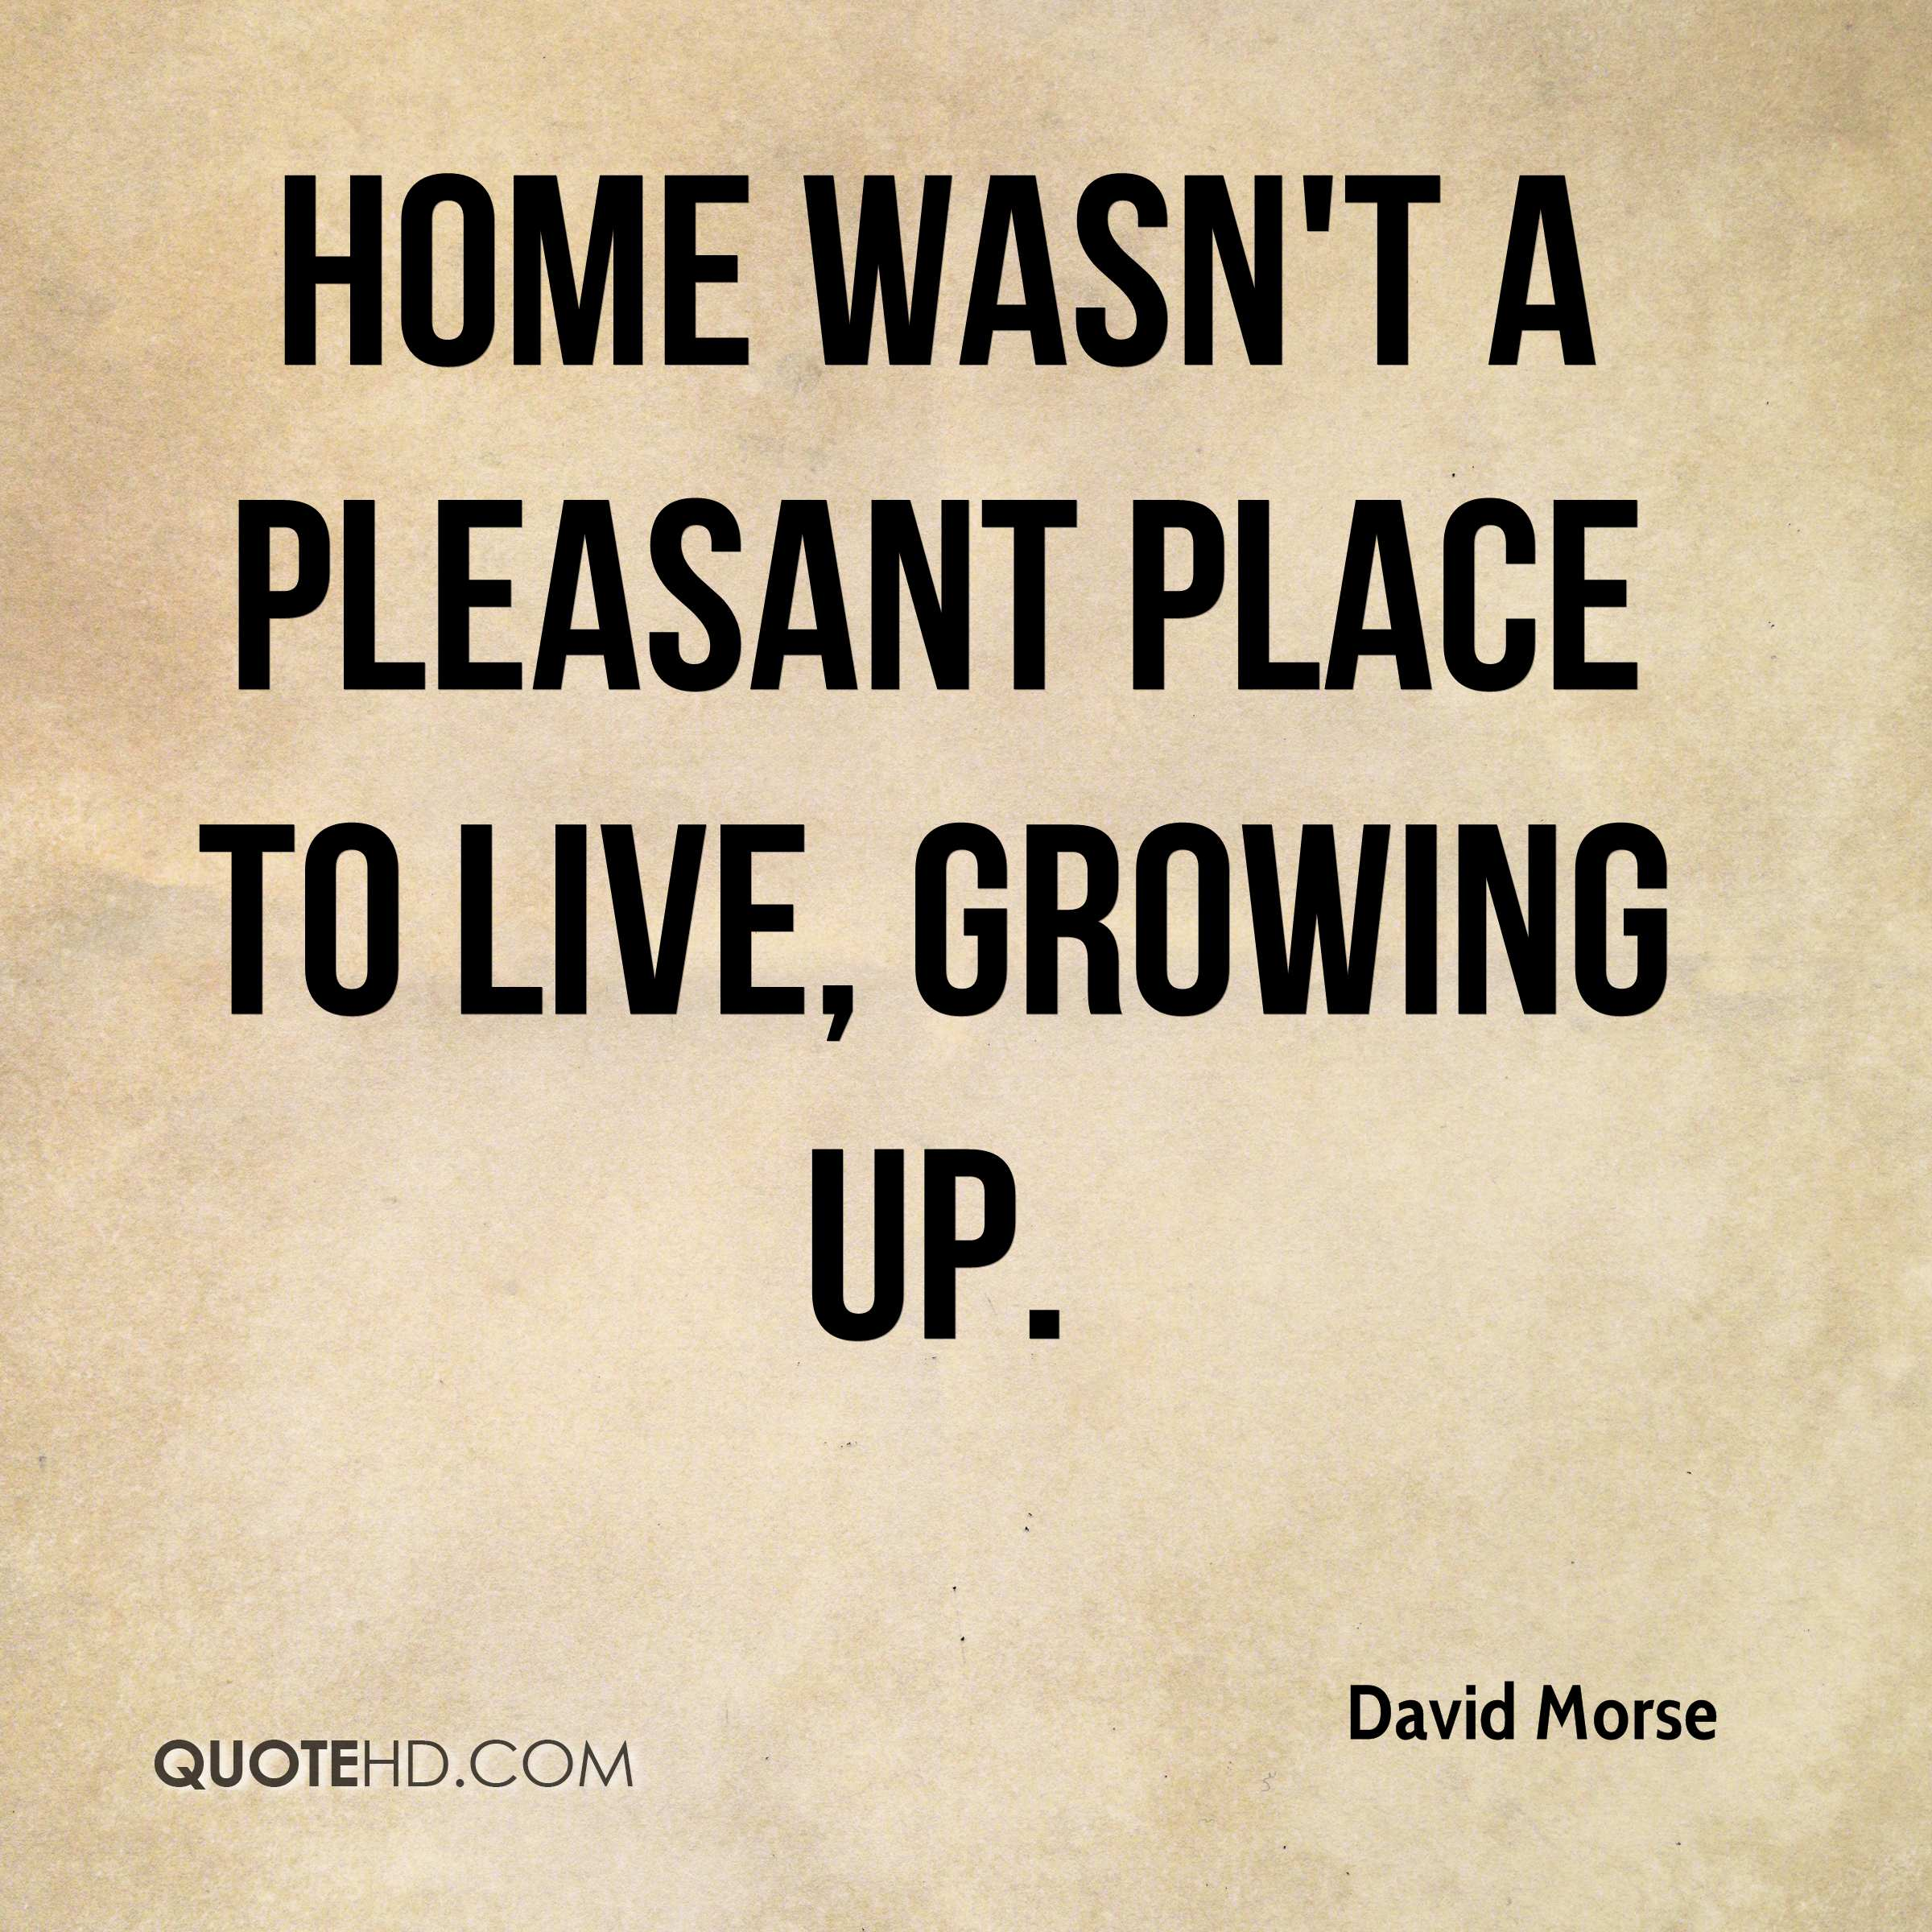 Home wasn't a pleasant place to live, growing up.